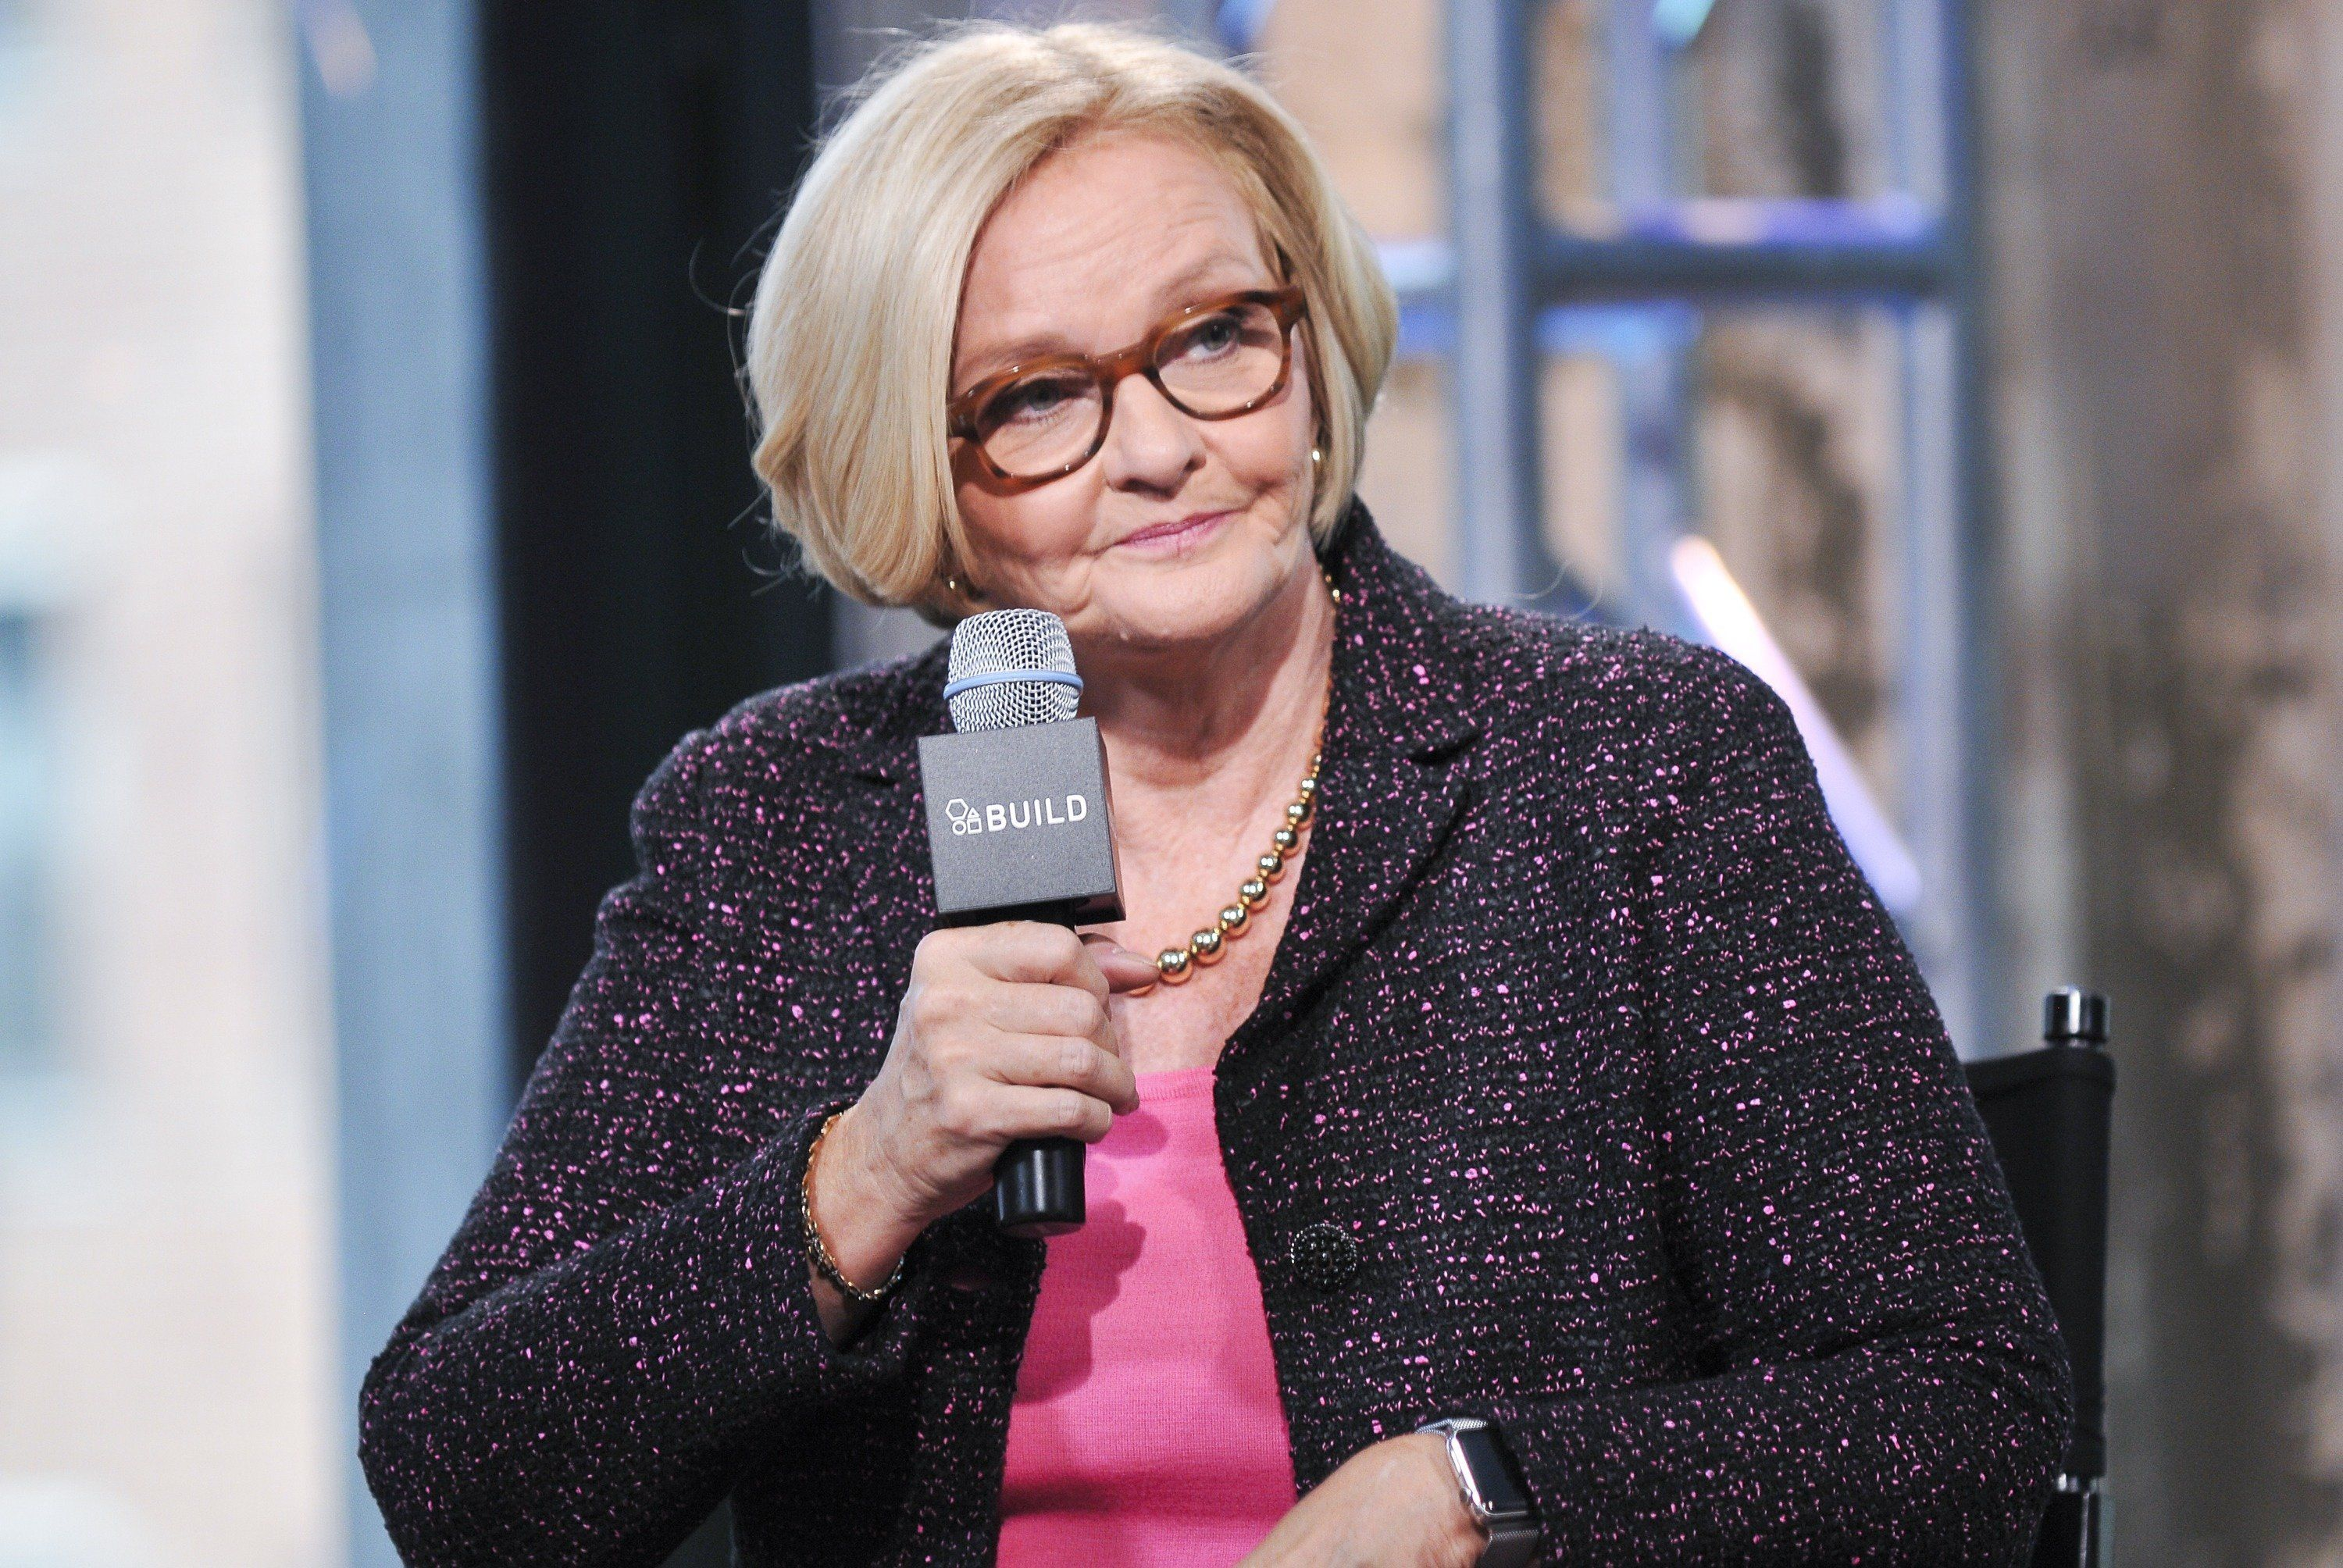 NEW YORK, NY - AUGUST 12:  U.S. Senator Claire McCaskill attends AOL Build Presents 'Plenty Ladylike' at AOL Studios in New York on August 12, 2015 in New York City.  (Photo by Jenny Anderson/WireImage)